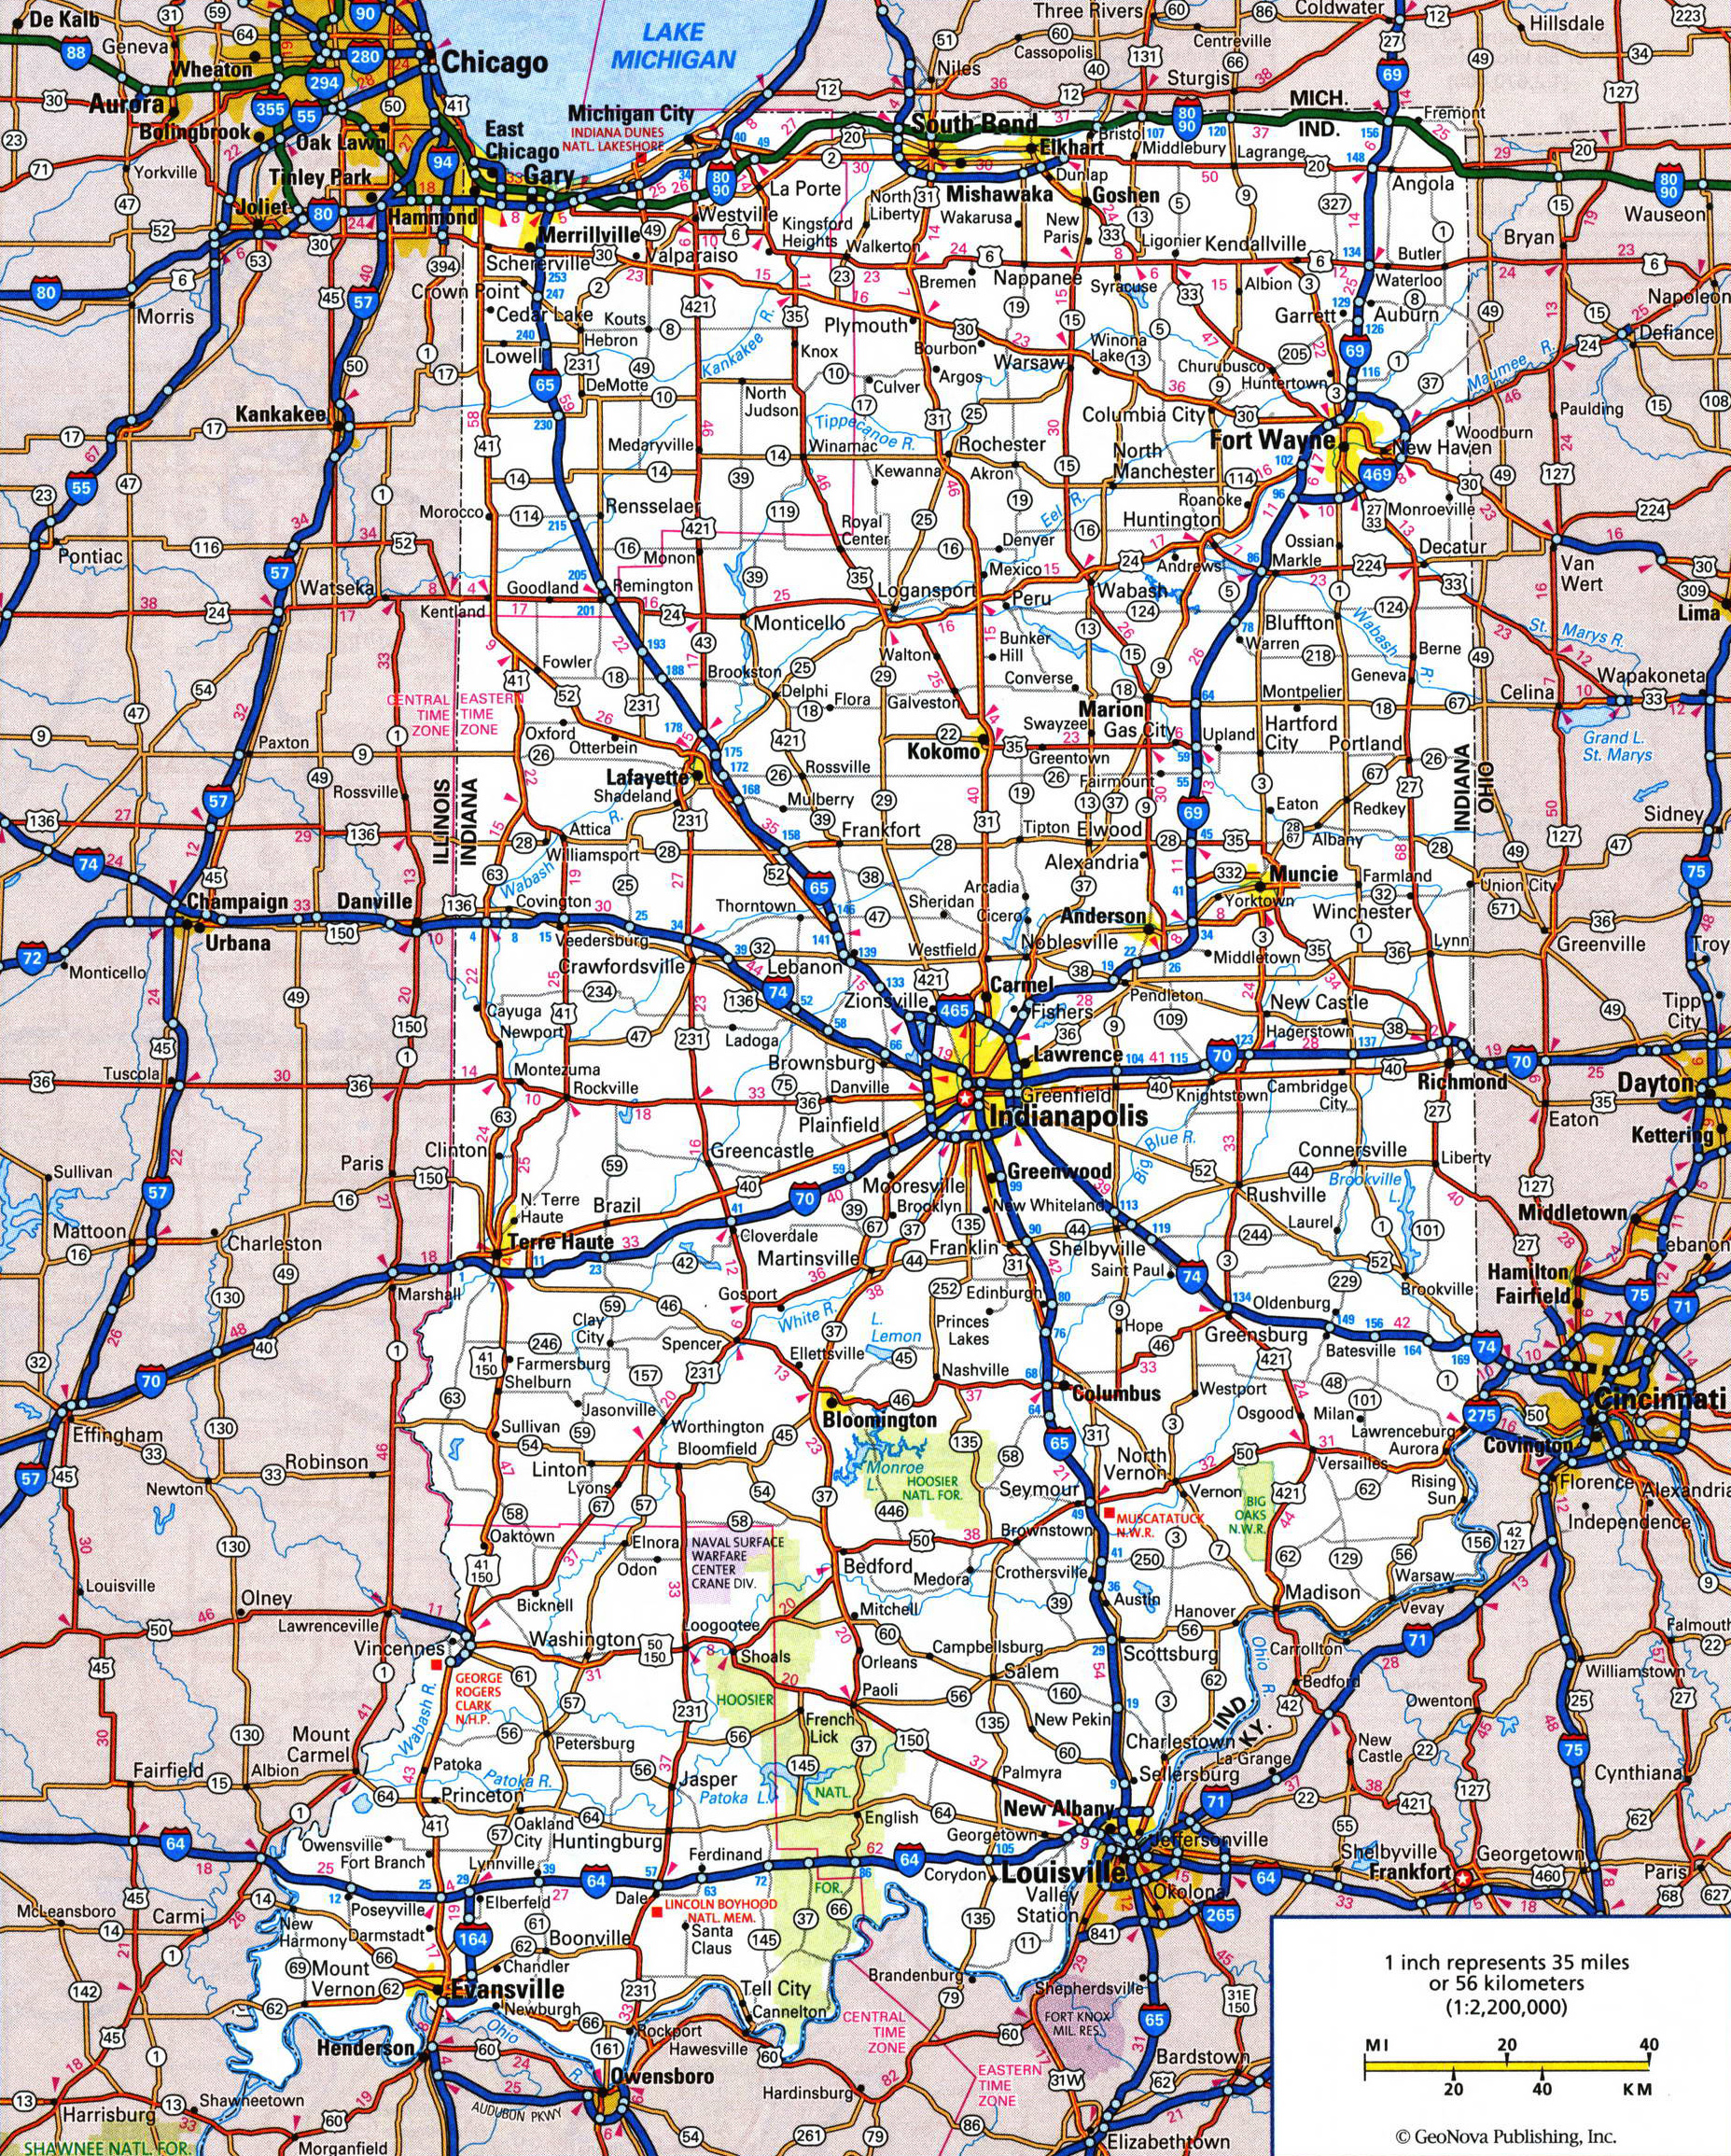 Large Detailed Roads And Highways Map Of Indiana State With All - Indiana state on us map